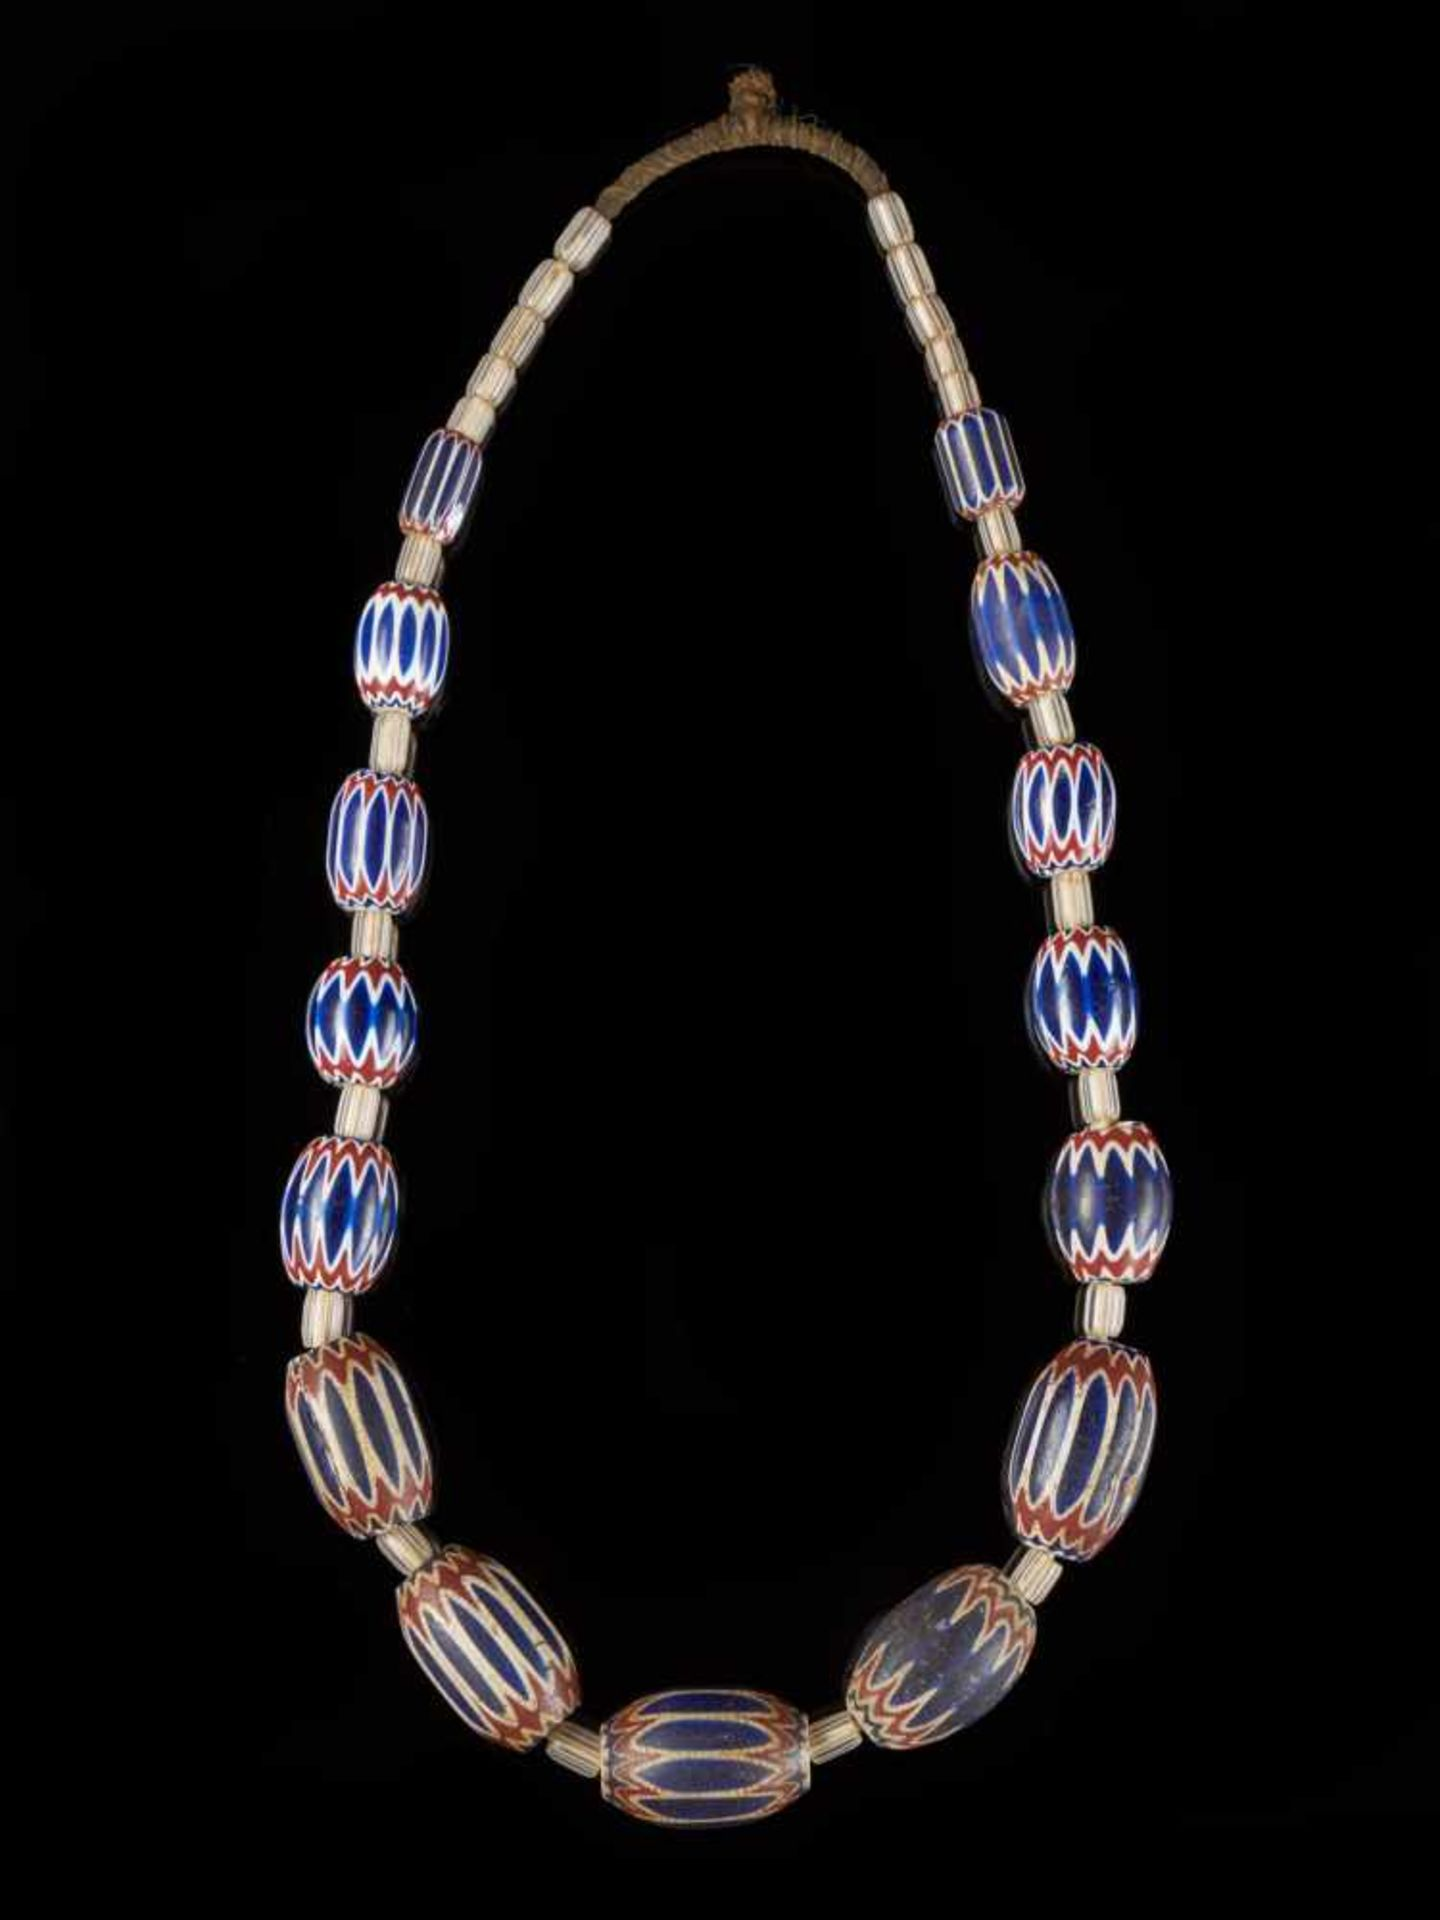 Traditional Bamileke 7 Layer Chevron Trade Bead Necklace Of 15 Beads. - Tribal ArtChevrons beads are